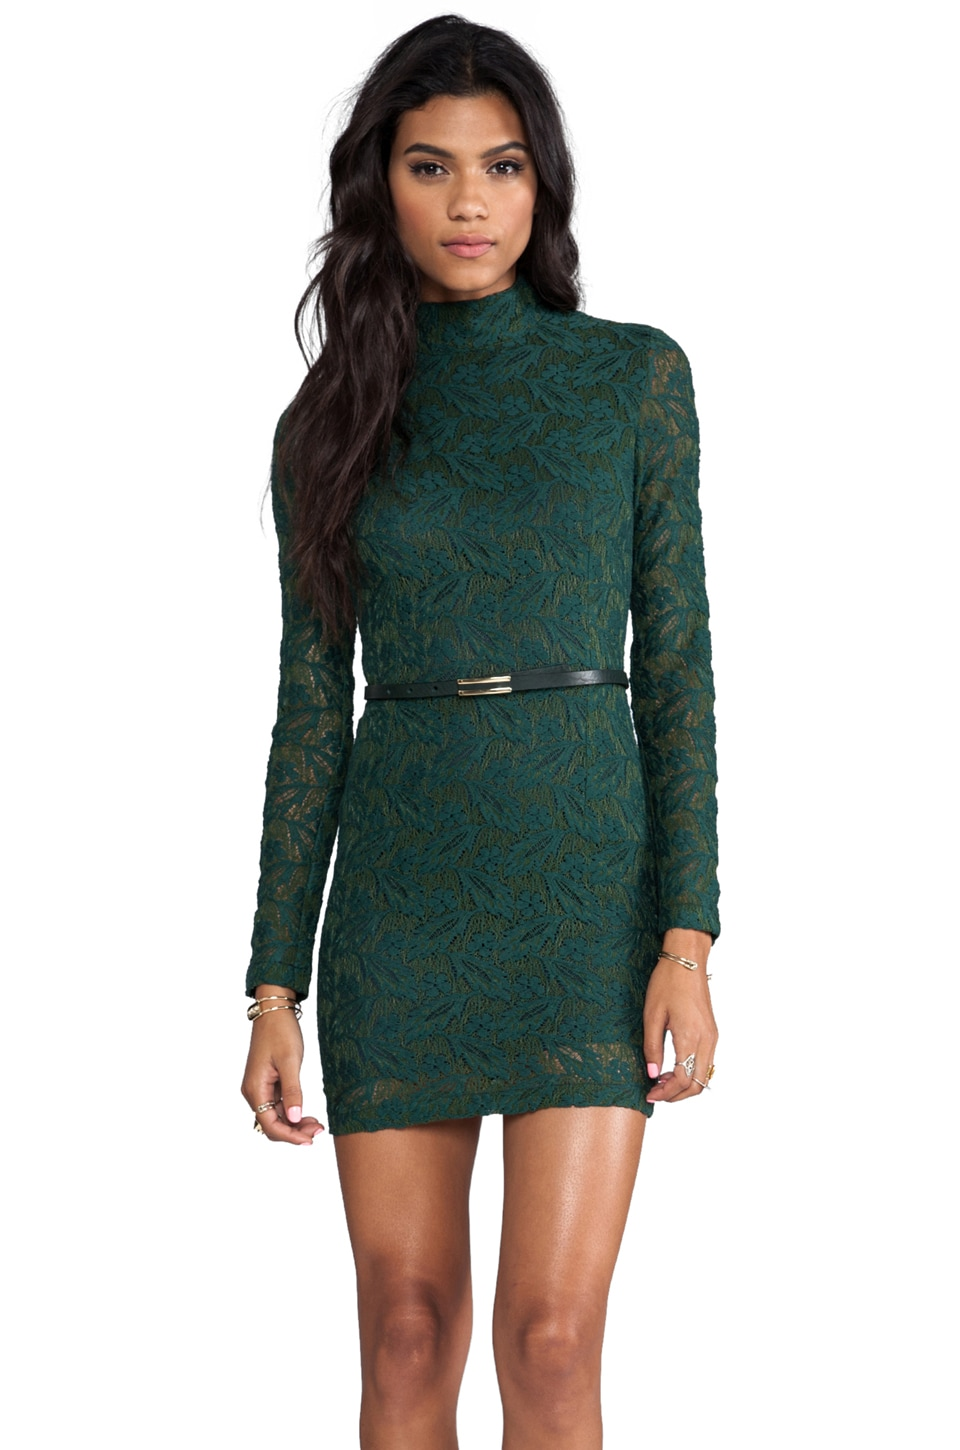 ROSEanna Harlem Duchess Long Sleeve Dress in Green Mousse